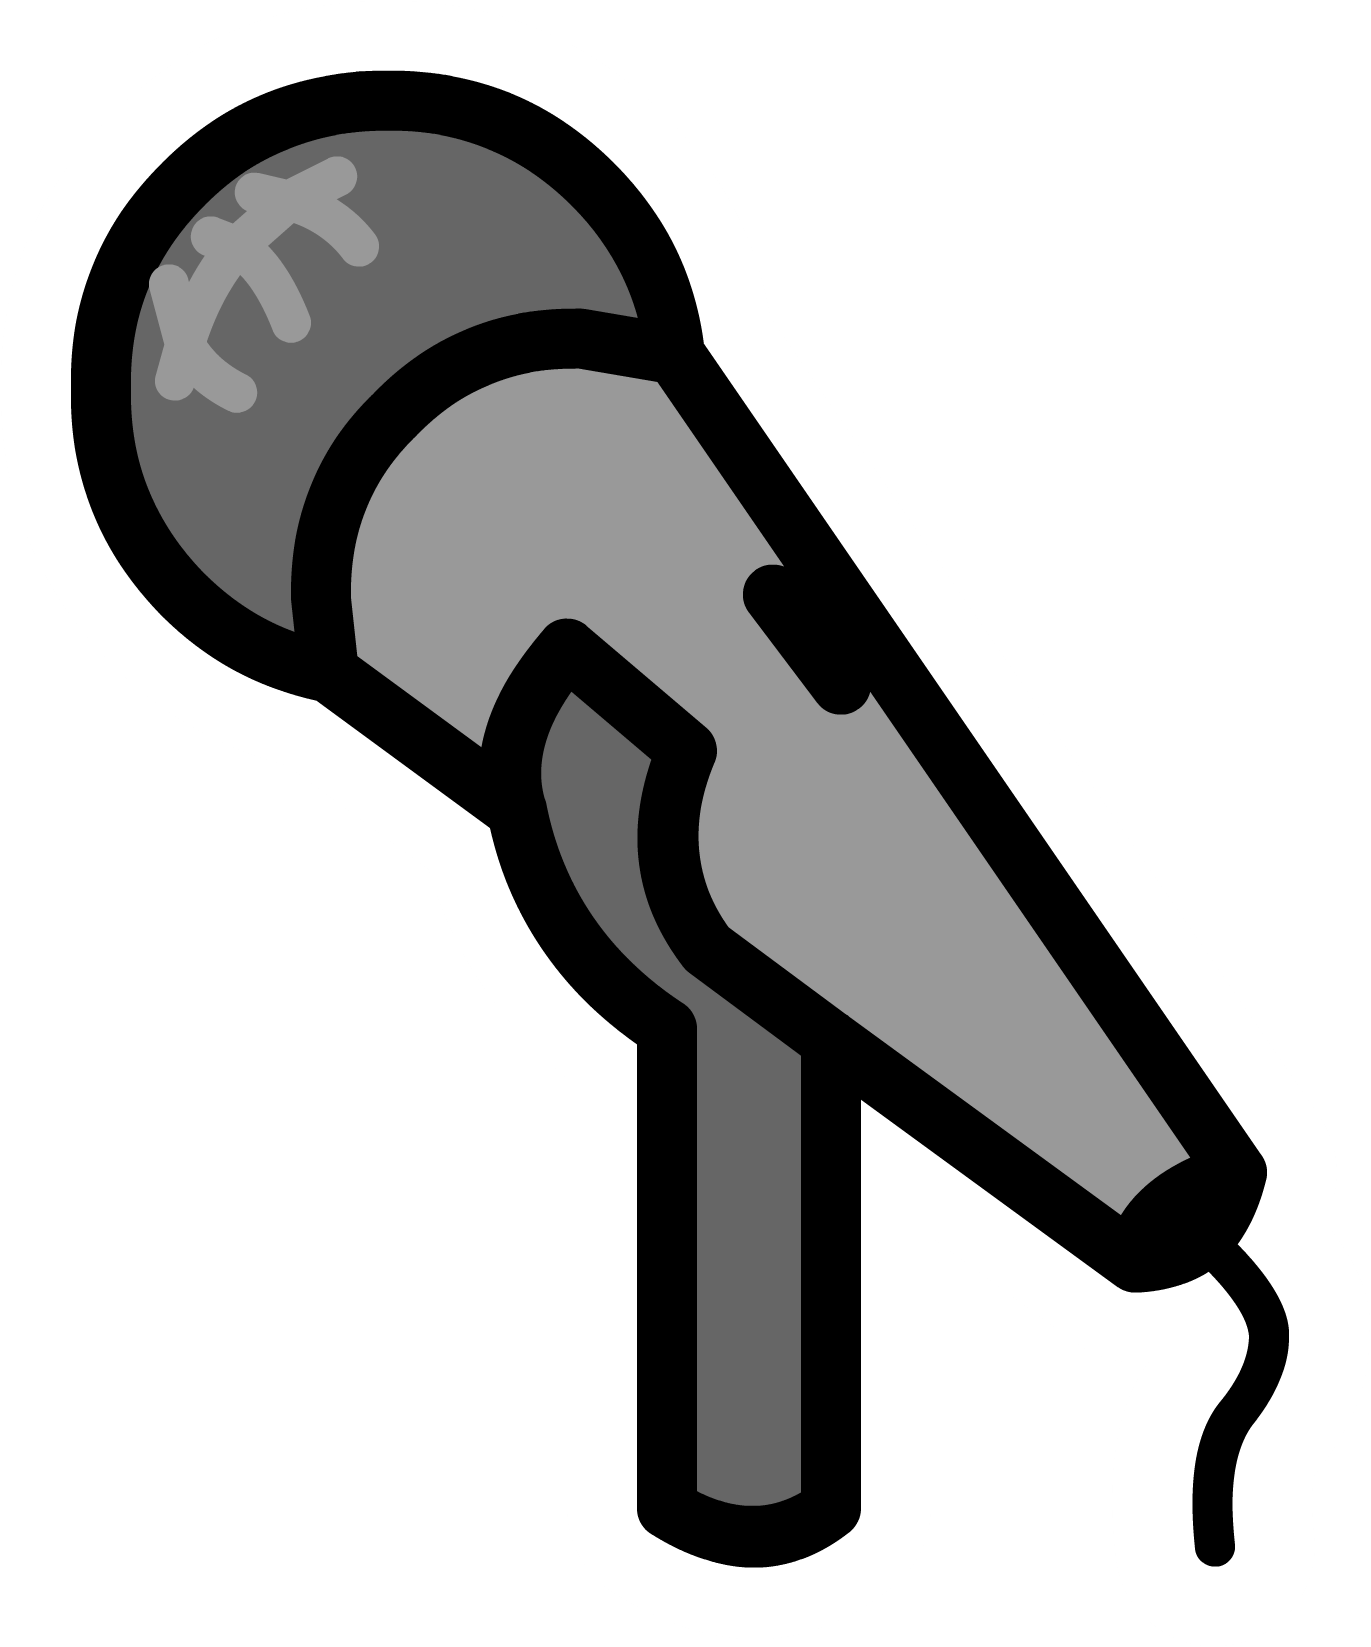 Microphone clipart stage microphone. Pin club penguin wiki